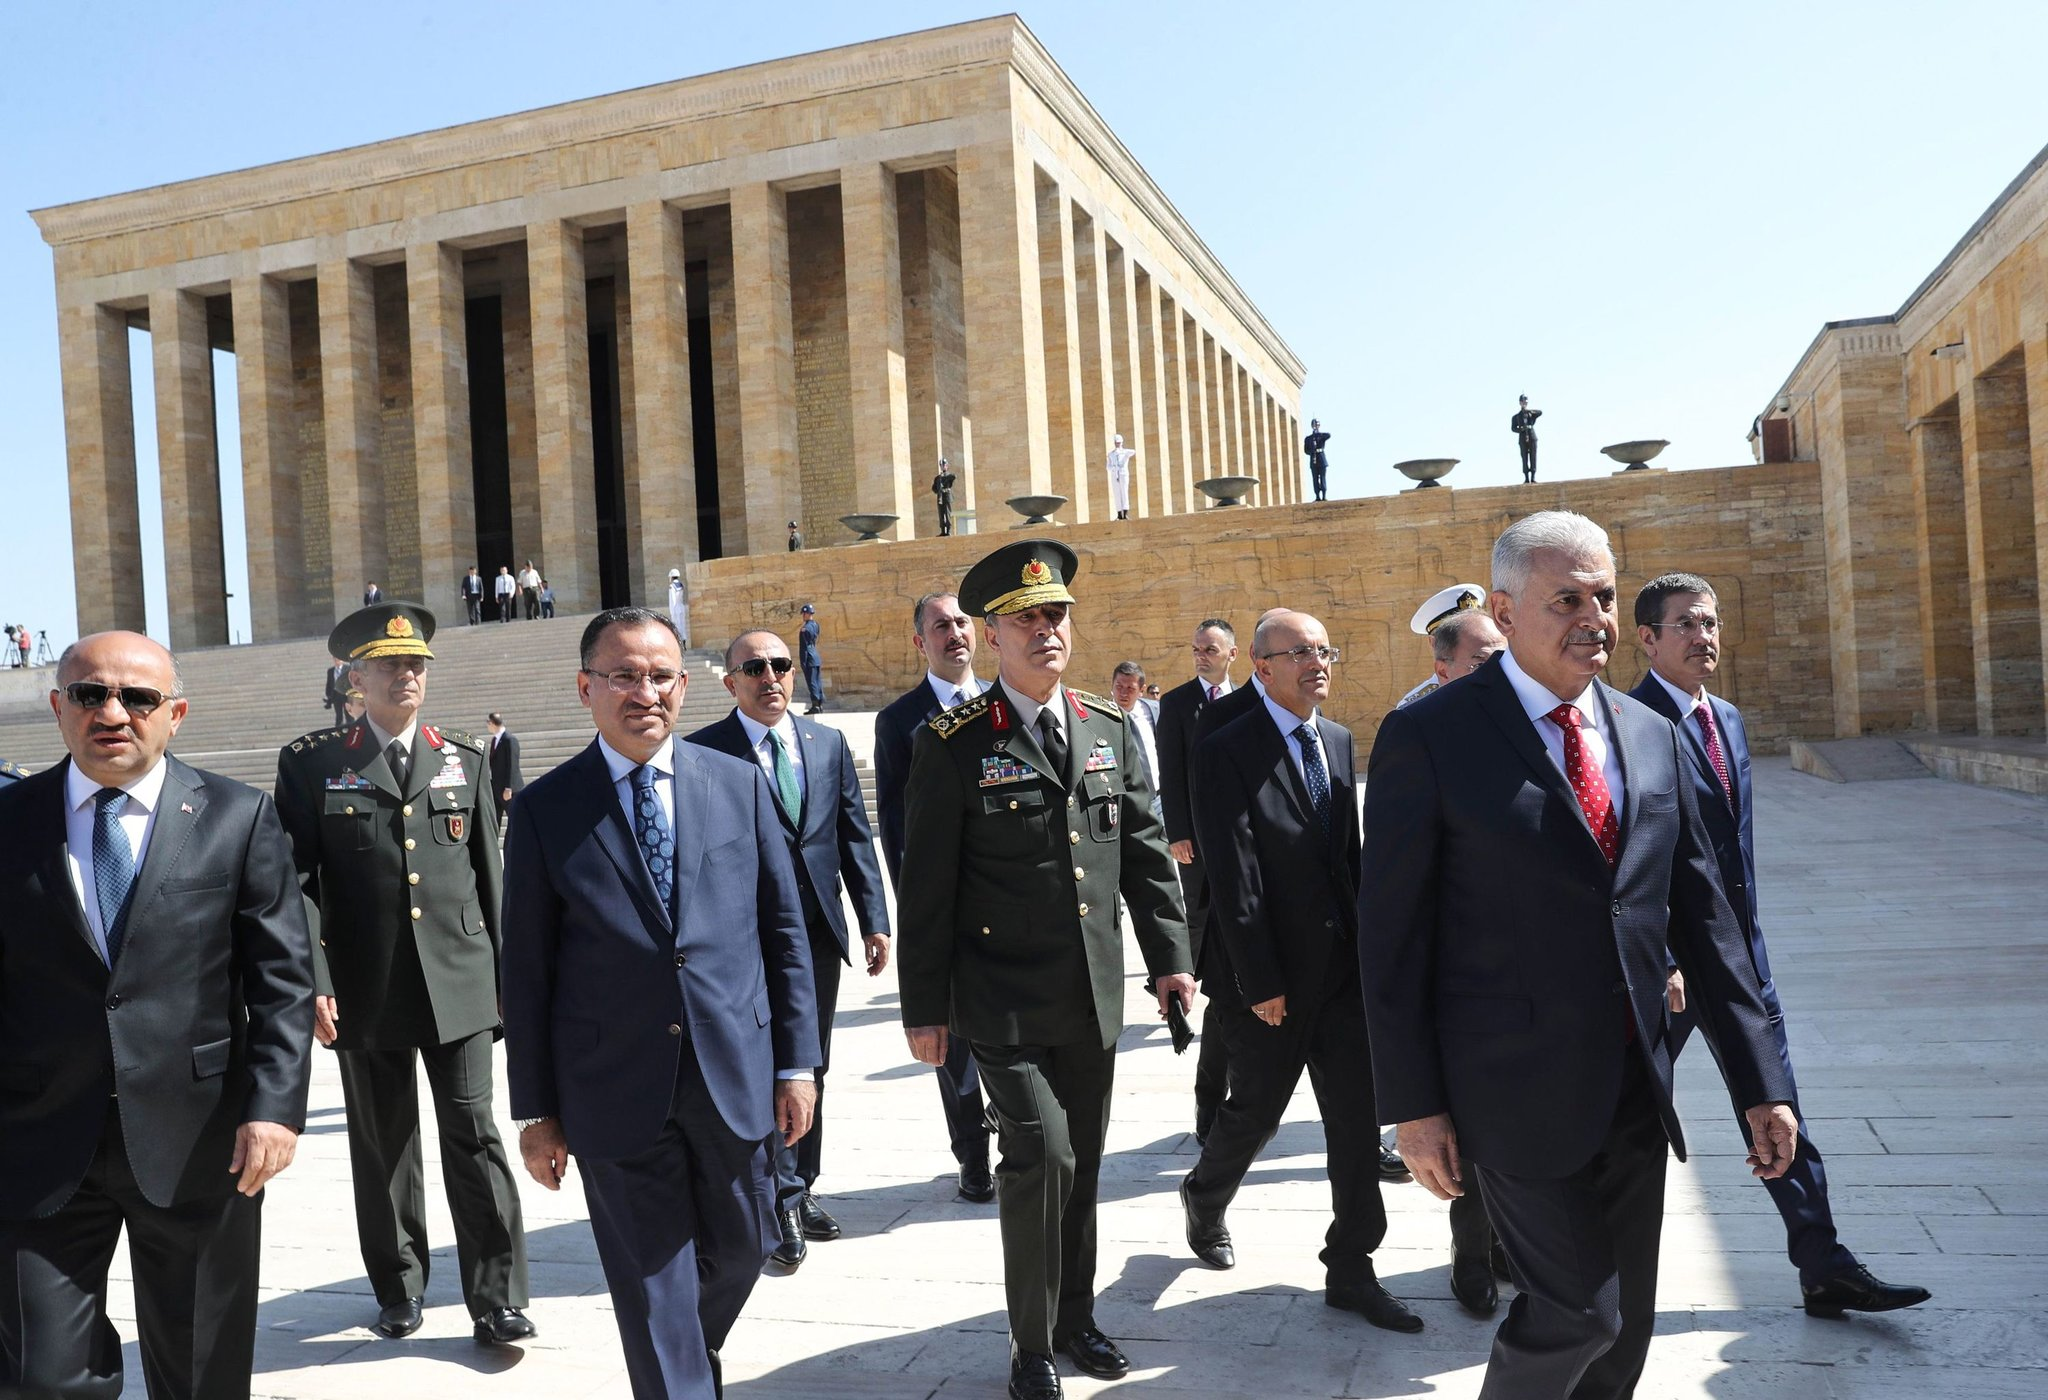 Ataturk Mausoleum Yildirim Chiefs of staff